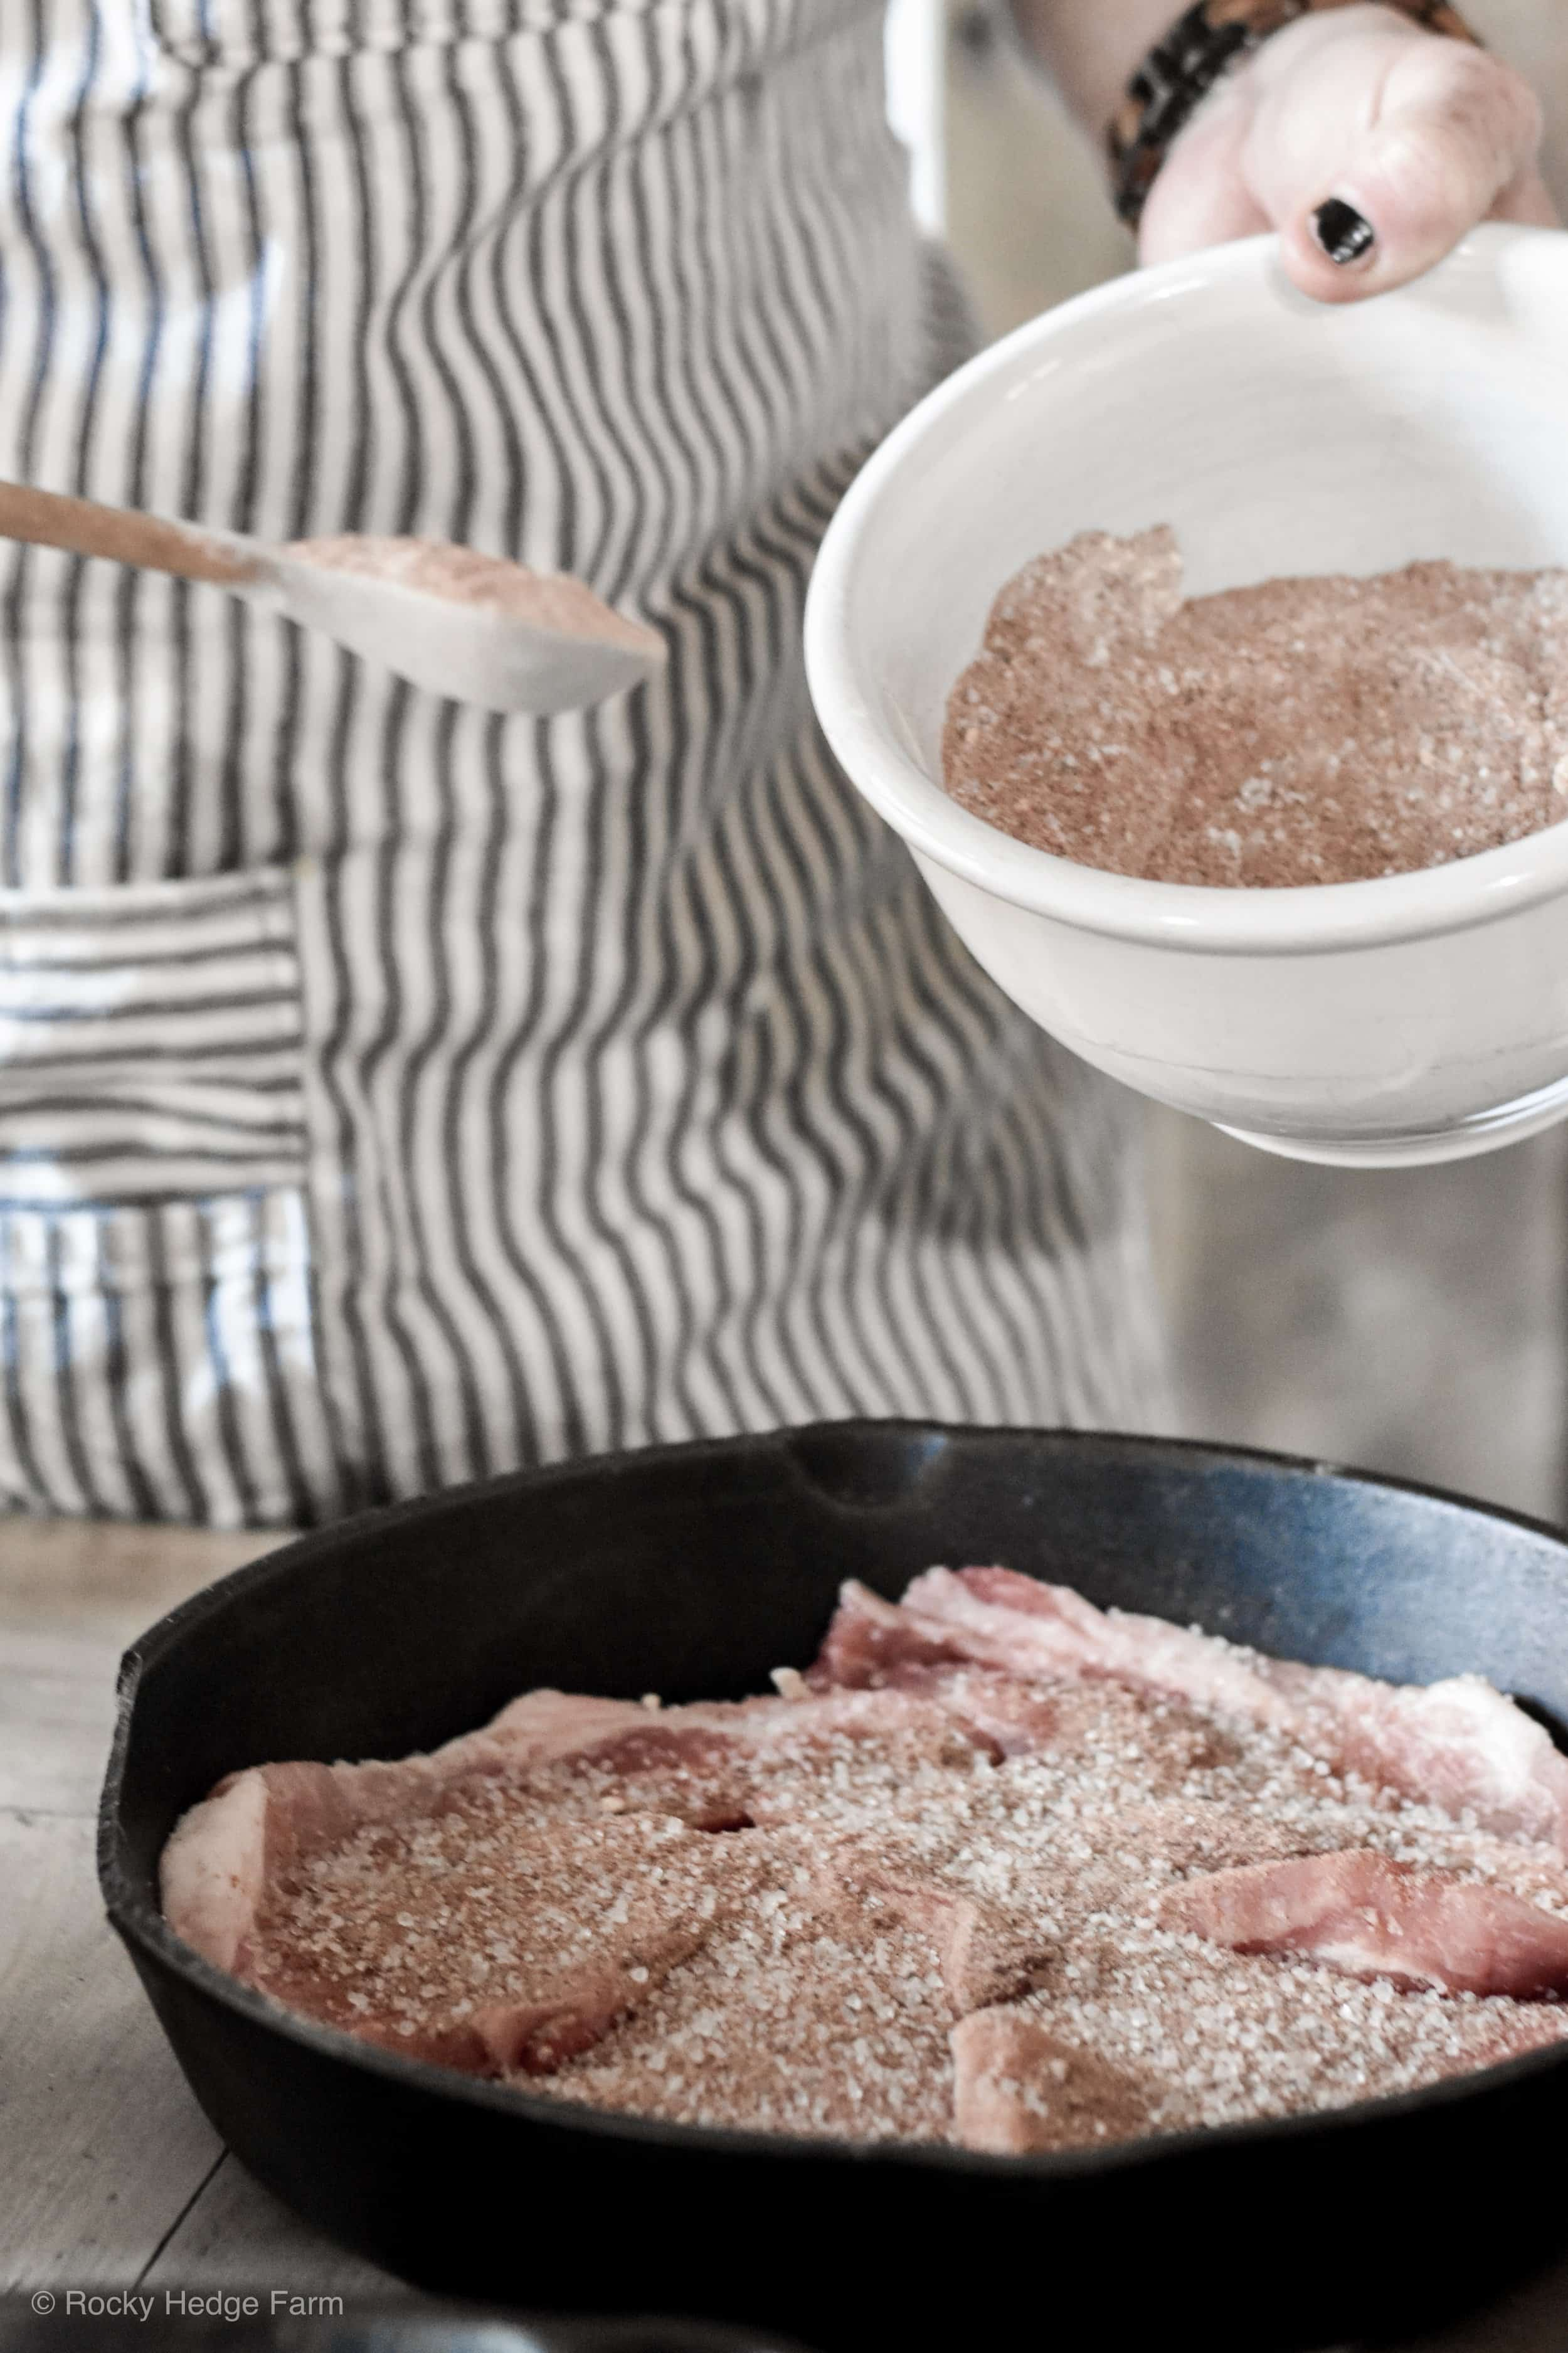 how long to bake oven pork chops at 400 degrees